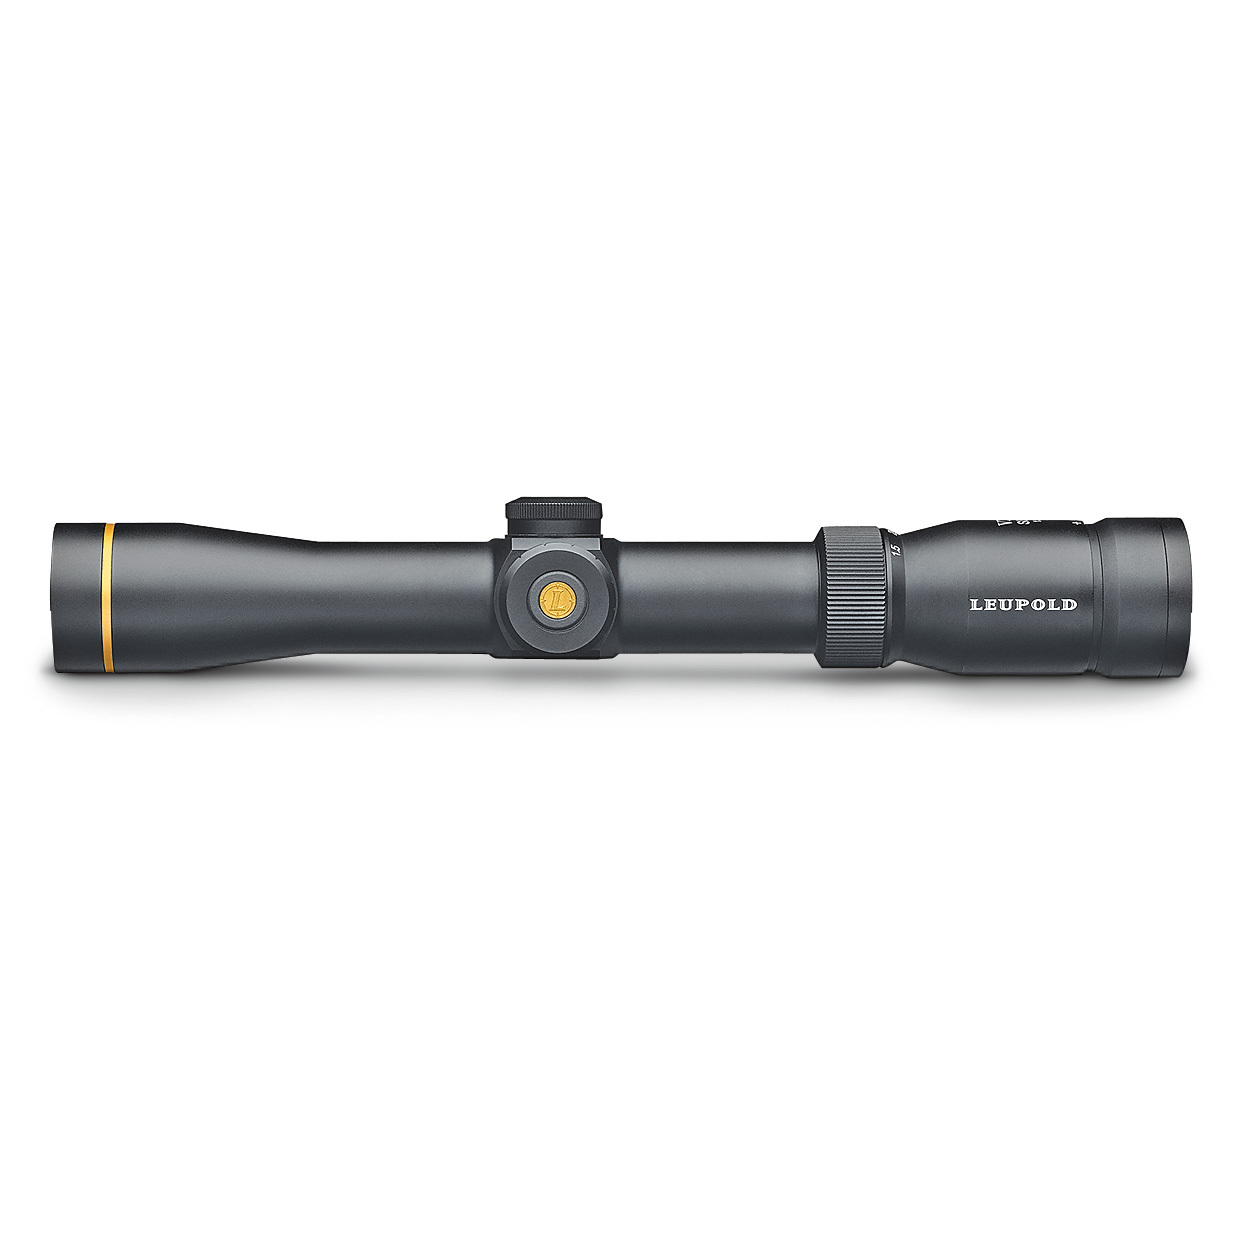 "Leupold VX-R Illuminated Reticle Rifle Scopes. Sharp optical performance, with the latest in targeting tech! Introducing the FireDot Reticle System... once activated, the dot within the reticle lights up with bright, sharp definition, while the rest of the reticle stays un-illuminated. This combination leads your eye naturally to center aiming point and makes target acquisition quick, precise and simple! Combine that with expected Leupold excellence, and you've got a formidable Scope. Features:Rugged 6061-T6 aircraft-grade aluminum construction Multi-FireDot Illuminated reticle Top-grade optics with Quantum Optical System and Index Matched coatings that boost light transmission by up to 98% 2nd generation oxygen-purged and argon / krypton-filled for decades of 100% WATERPROOF, fogproof and shockproof performance DiamondCoat lens coating for extra abrasion resistance and light transmission Blackened lens edges reduce unwanted glare and diffusion Motion Sensor Technology makes the reticle automatically switch to ""stand-by mode"" after five minutes of inactivity, then reactivate whenever the rifle is moved. This eliminates the need for excess movement reaching for buttons, while extending battery life Finger-adjustable 1/4 MOA click adjustments 30mm main tube. Buy rings separately.Magnification: 3-9X Obj.: 40mm Reticle: Multi-FireDot Finish: Matte Eye Relief: 4.2-3.7"" Length: 12.6"" Weight: 15.3 ozs. F.O.V. @ 100 yds.: 33.6-13.6 ft. - $549.99"